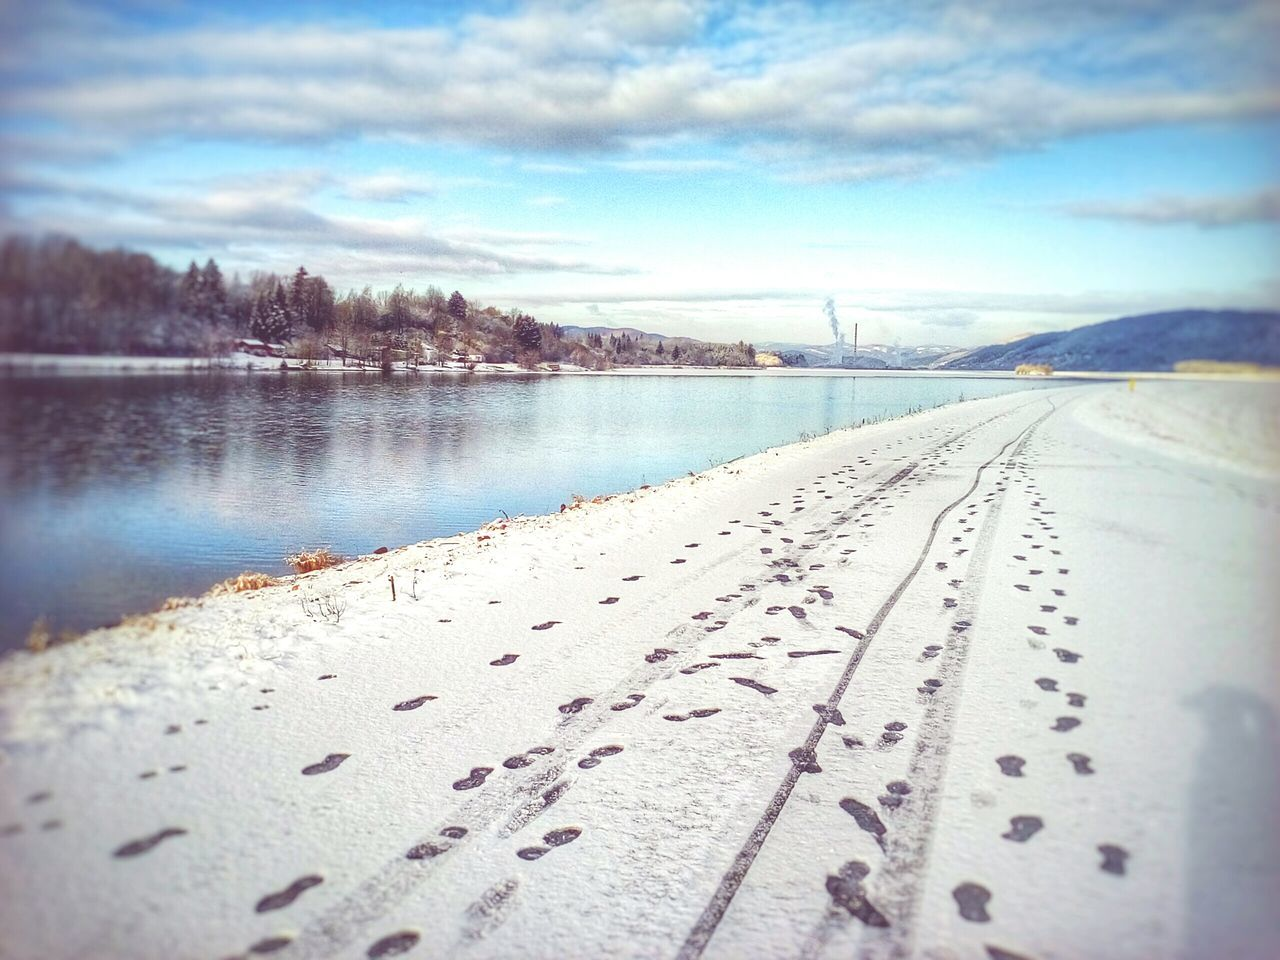 Winter Landscape Snow Fresh Snow Traces In The Snow Footprints In The Snow Where Are You Going? Road White Road River Blue Sky Reflection Water Reflections Heavenly Blue Chimney City In Background Zilina Landscapes With WhiteWall